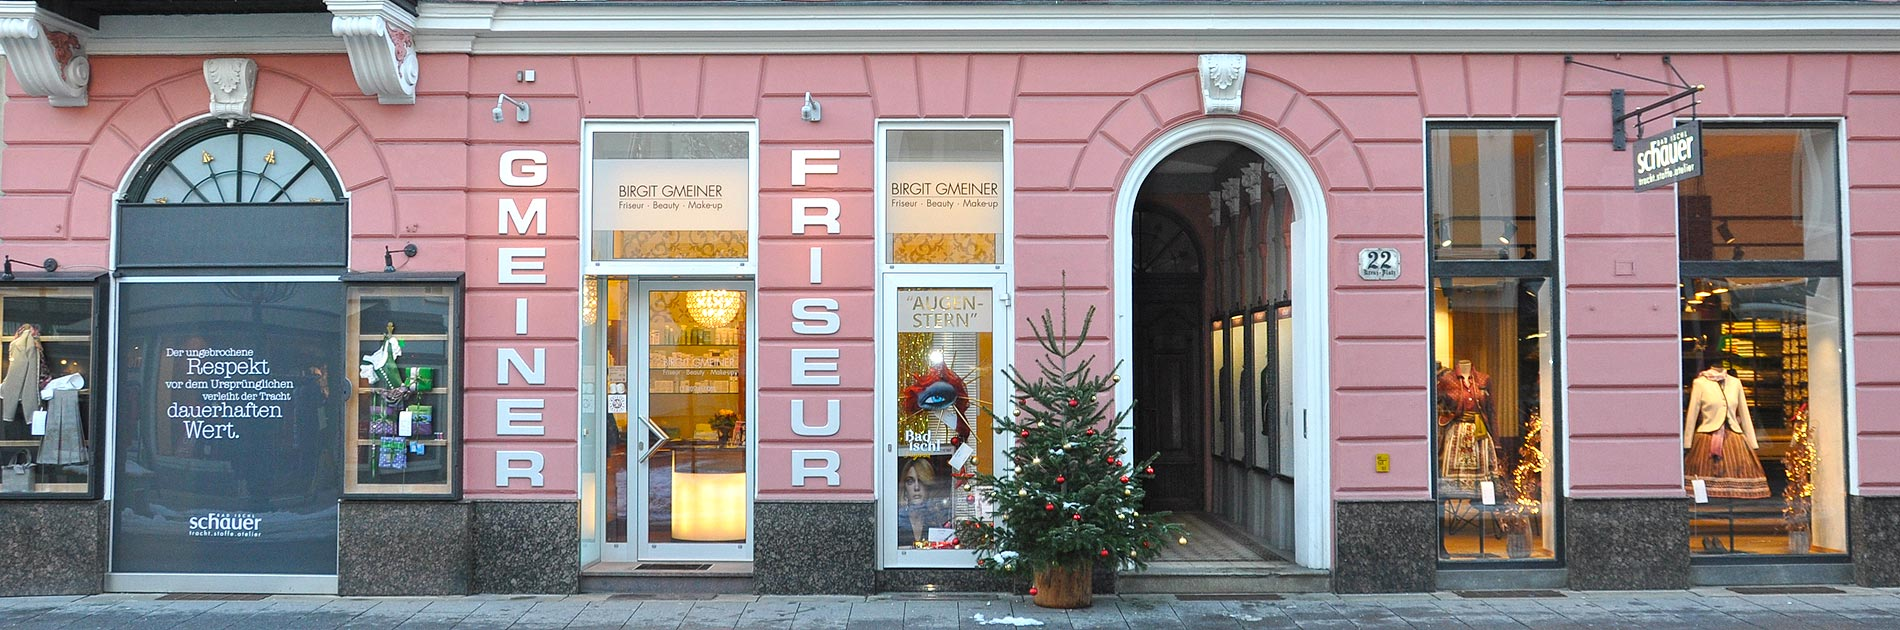 Fiseur-Salon Gmeiner in Bad Ischl - Eingang